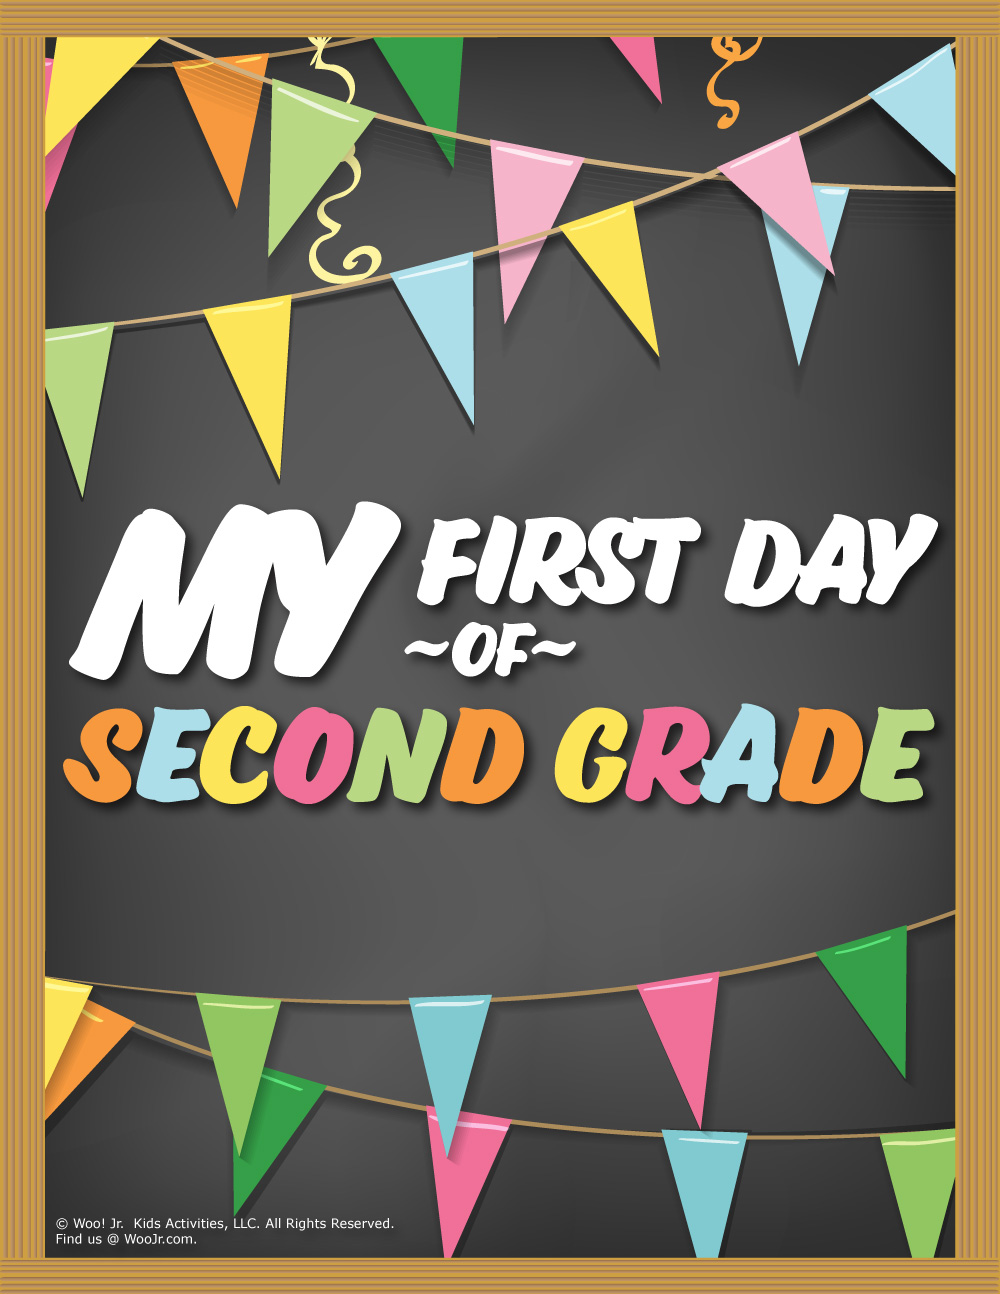 picture regarding First Day of 2nd Grade Printable Sign identify 1st Working day of 2nd Quality Indicator - Chalkboard Woo! Jr. Children